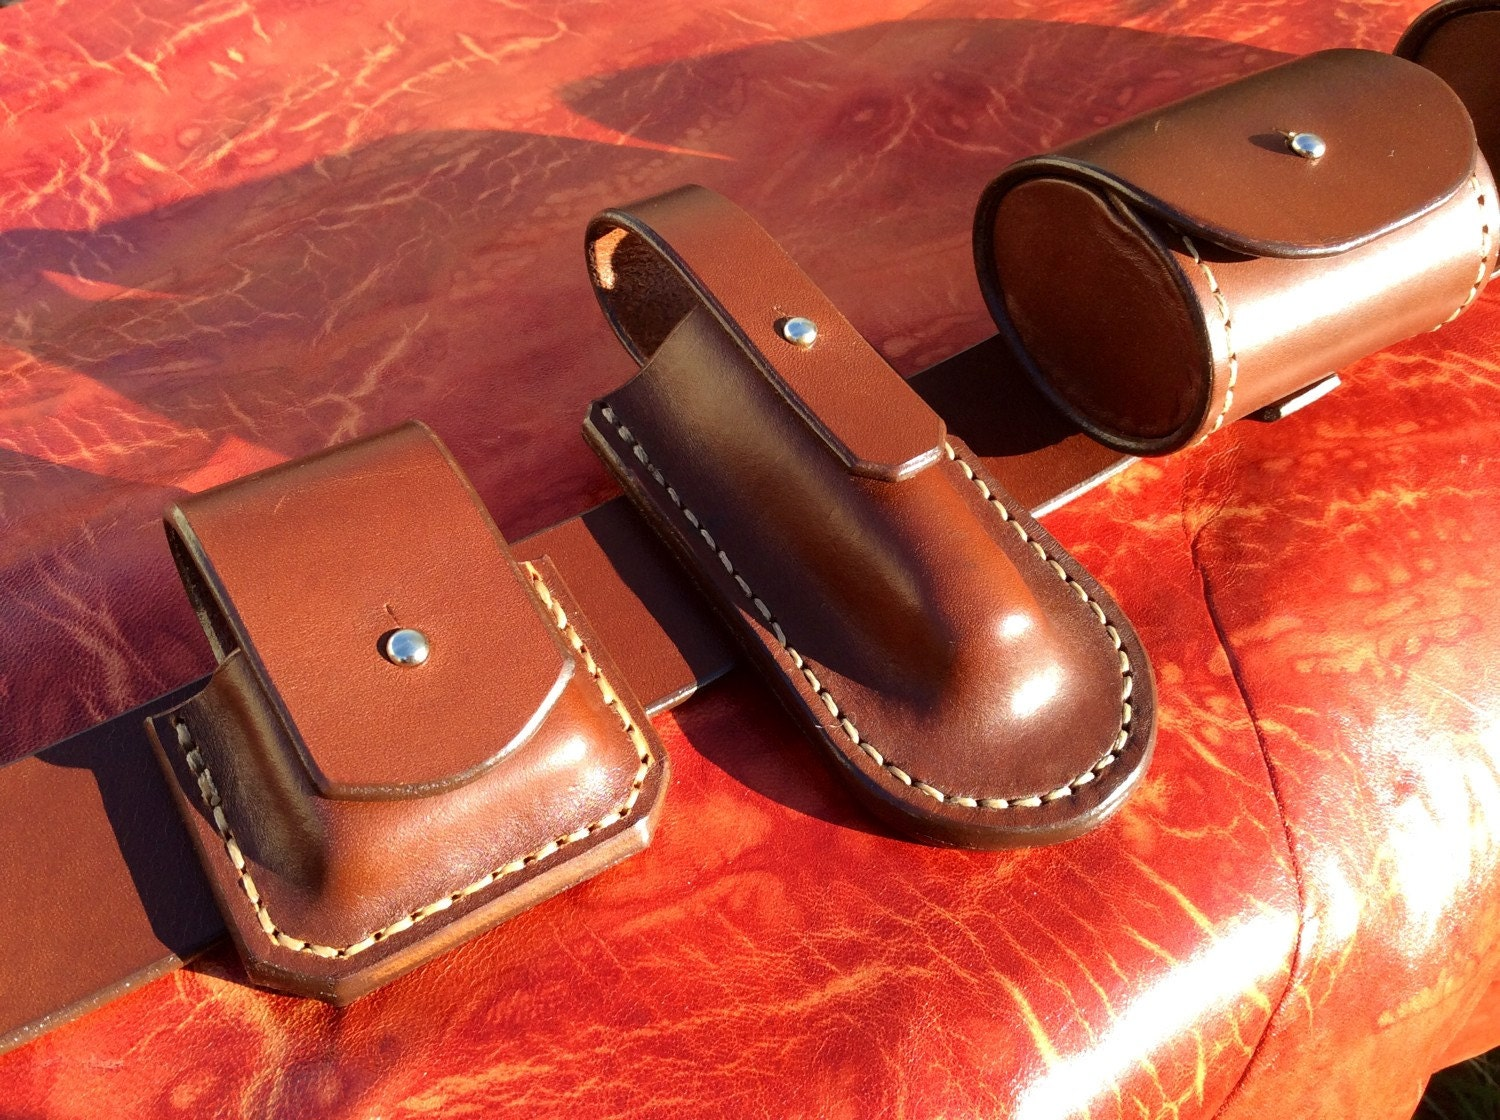 belt bushcraft leather handmade in by koffpolo on etsy